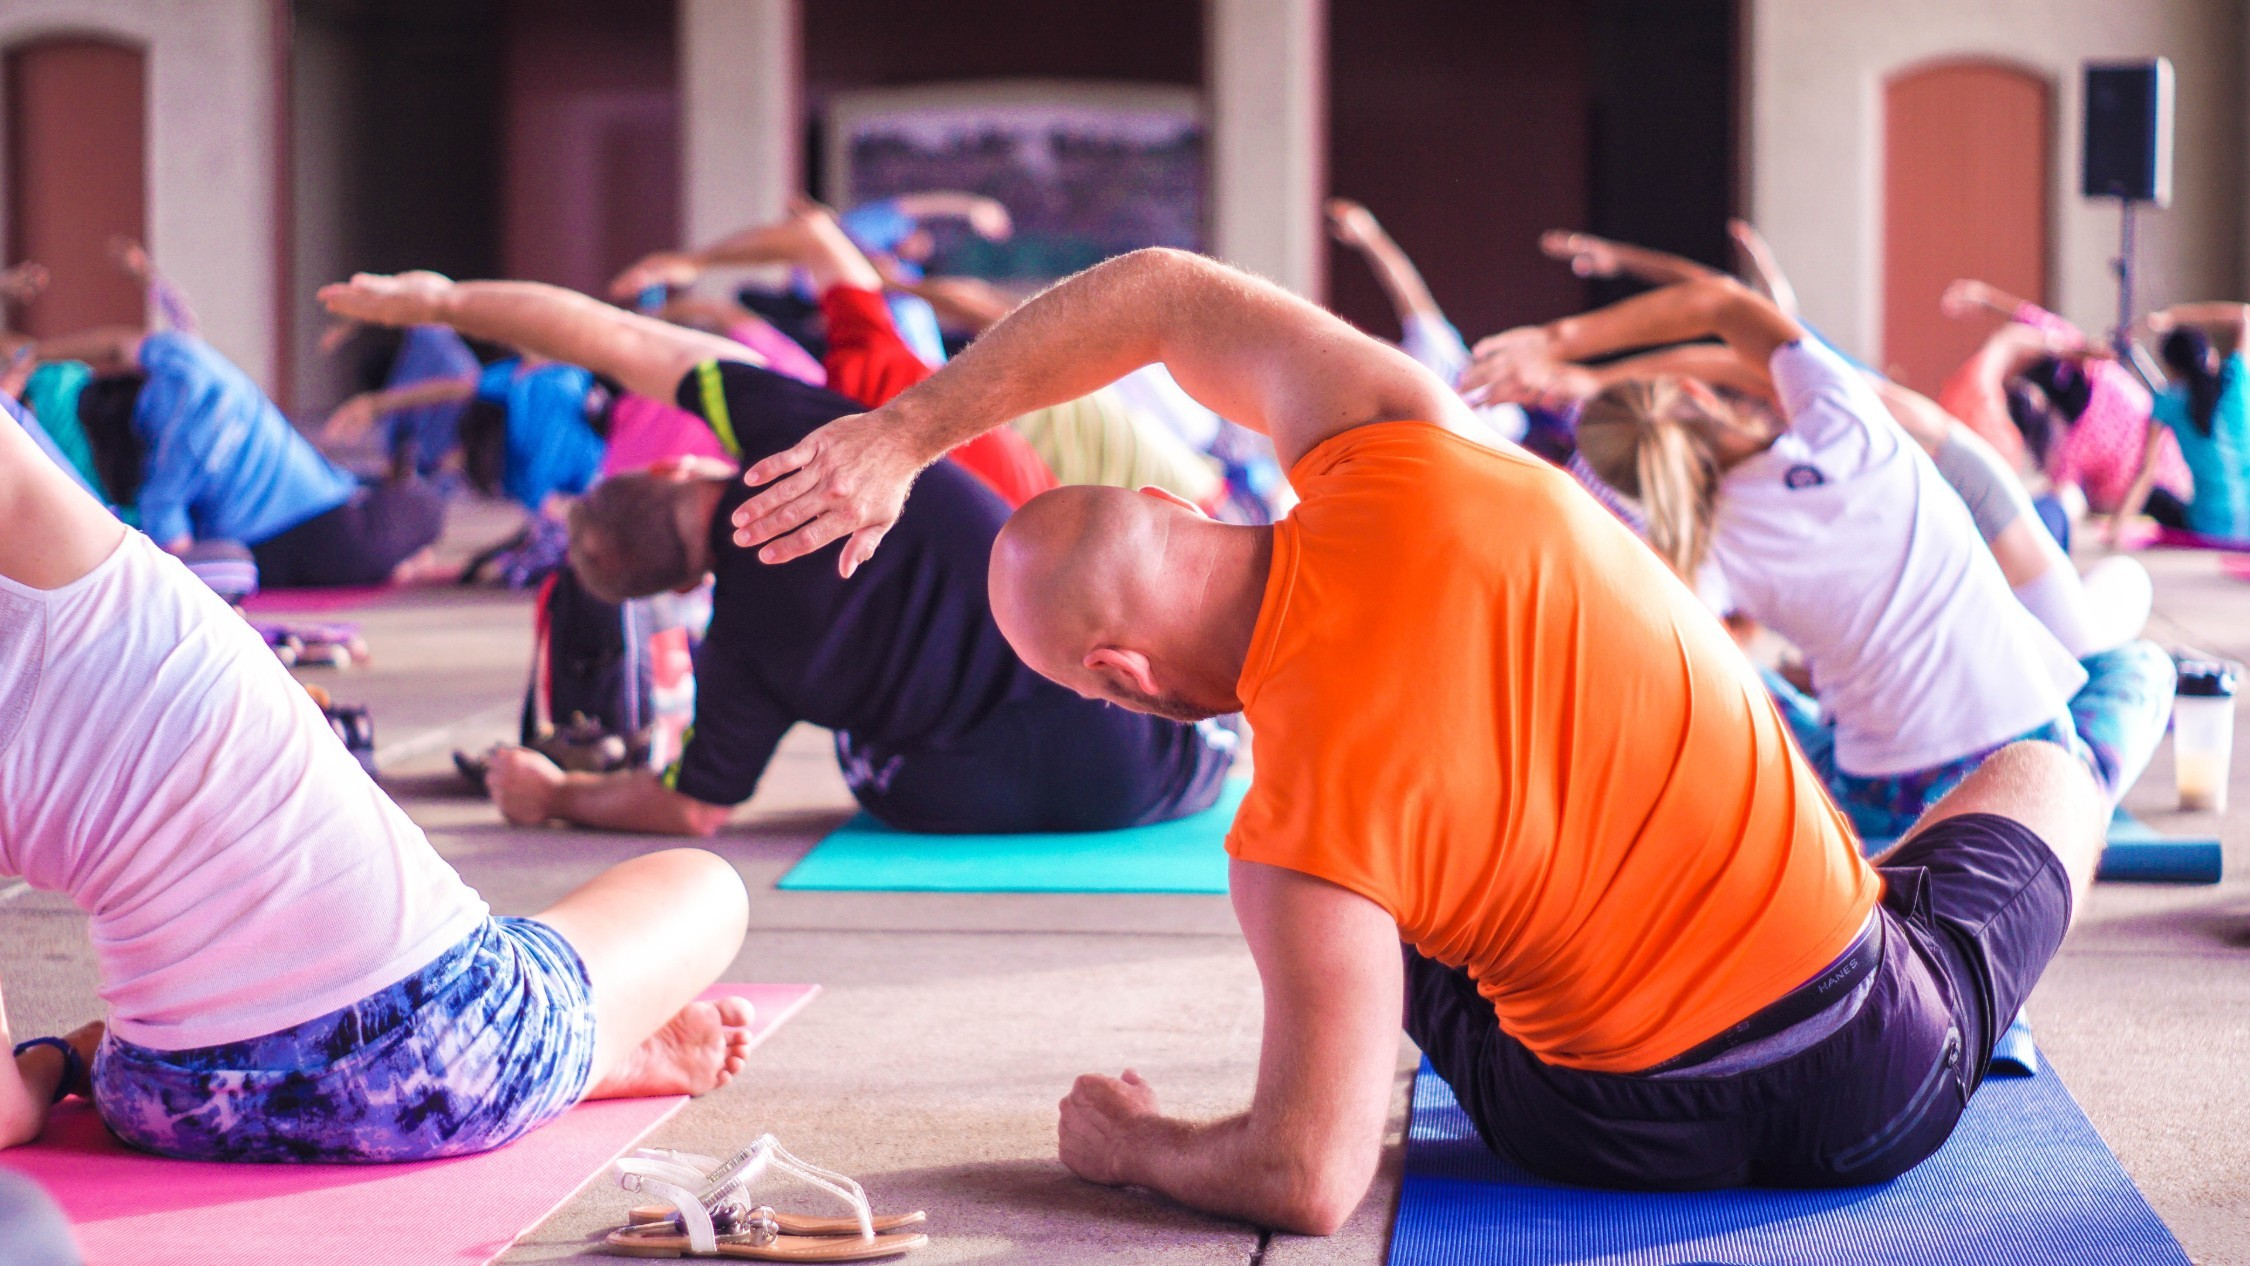 Melbourne now has $1 yoga classes to raise money for the Big Issue